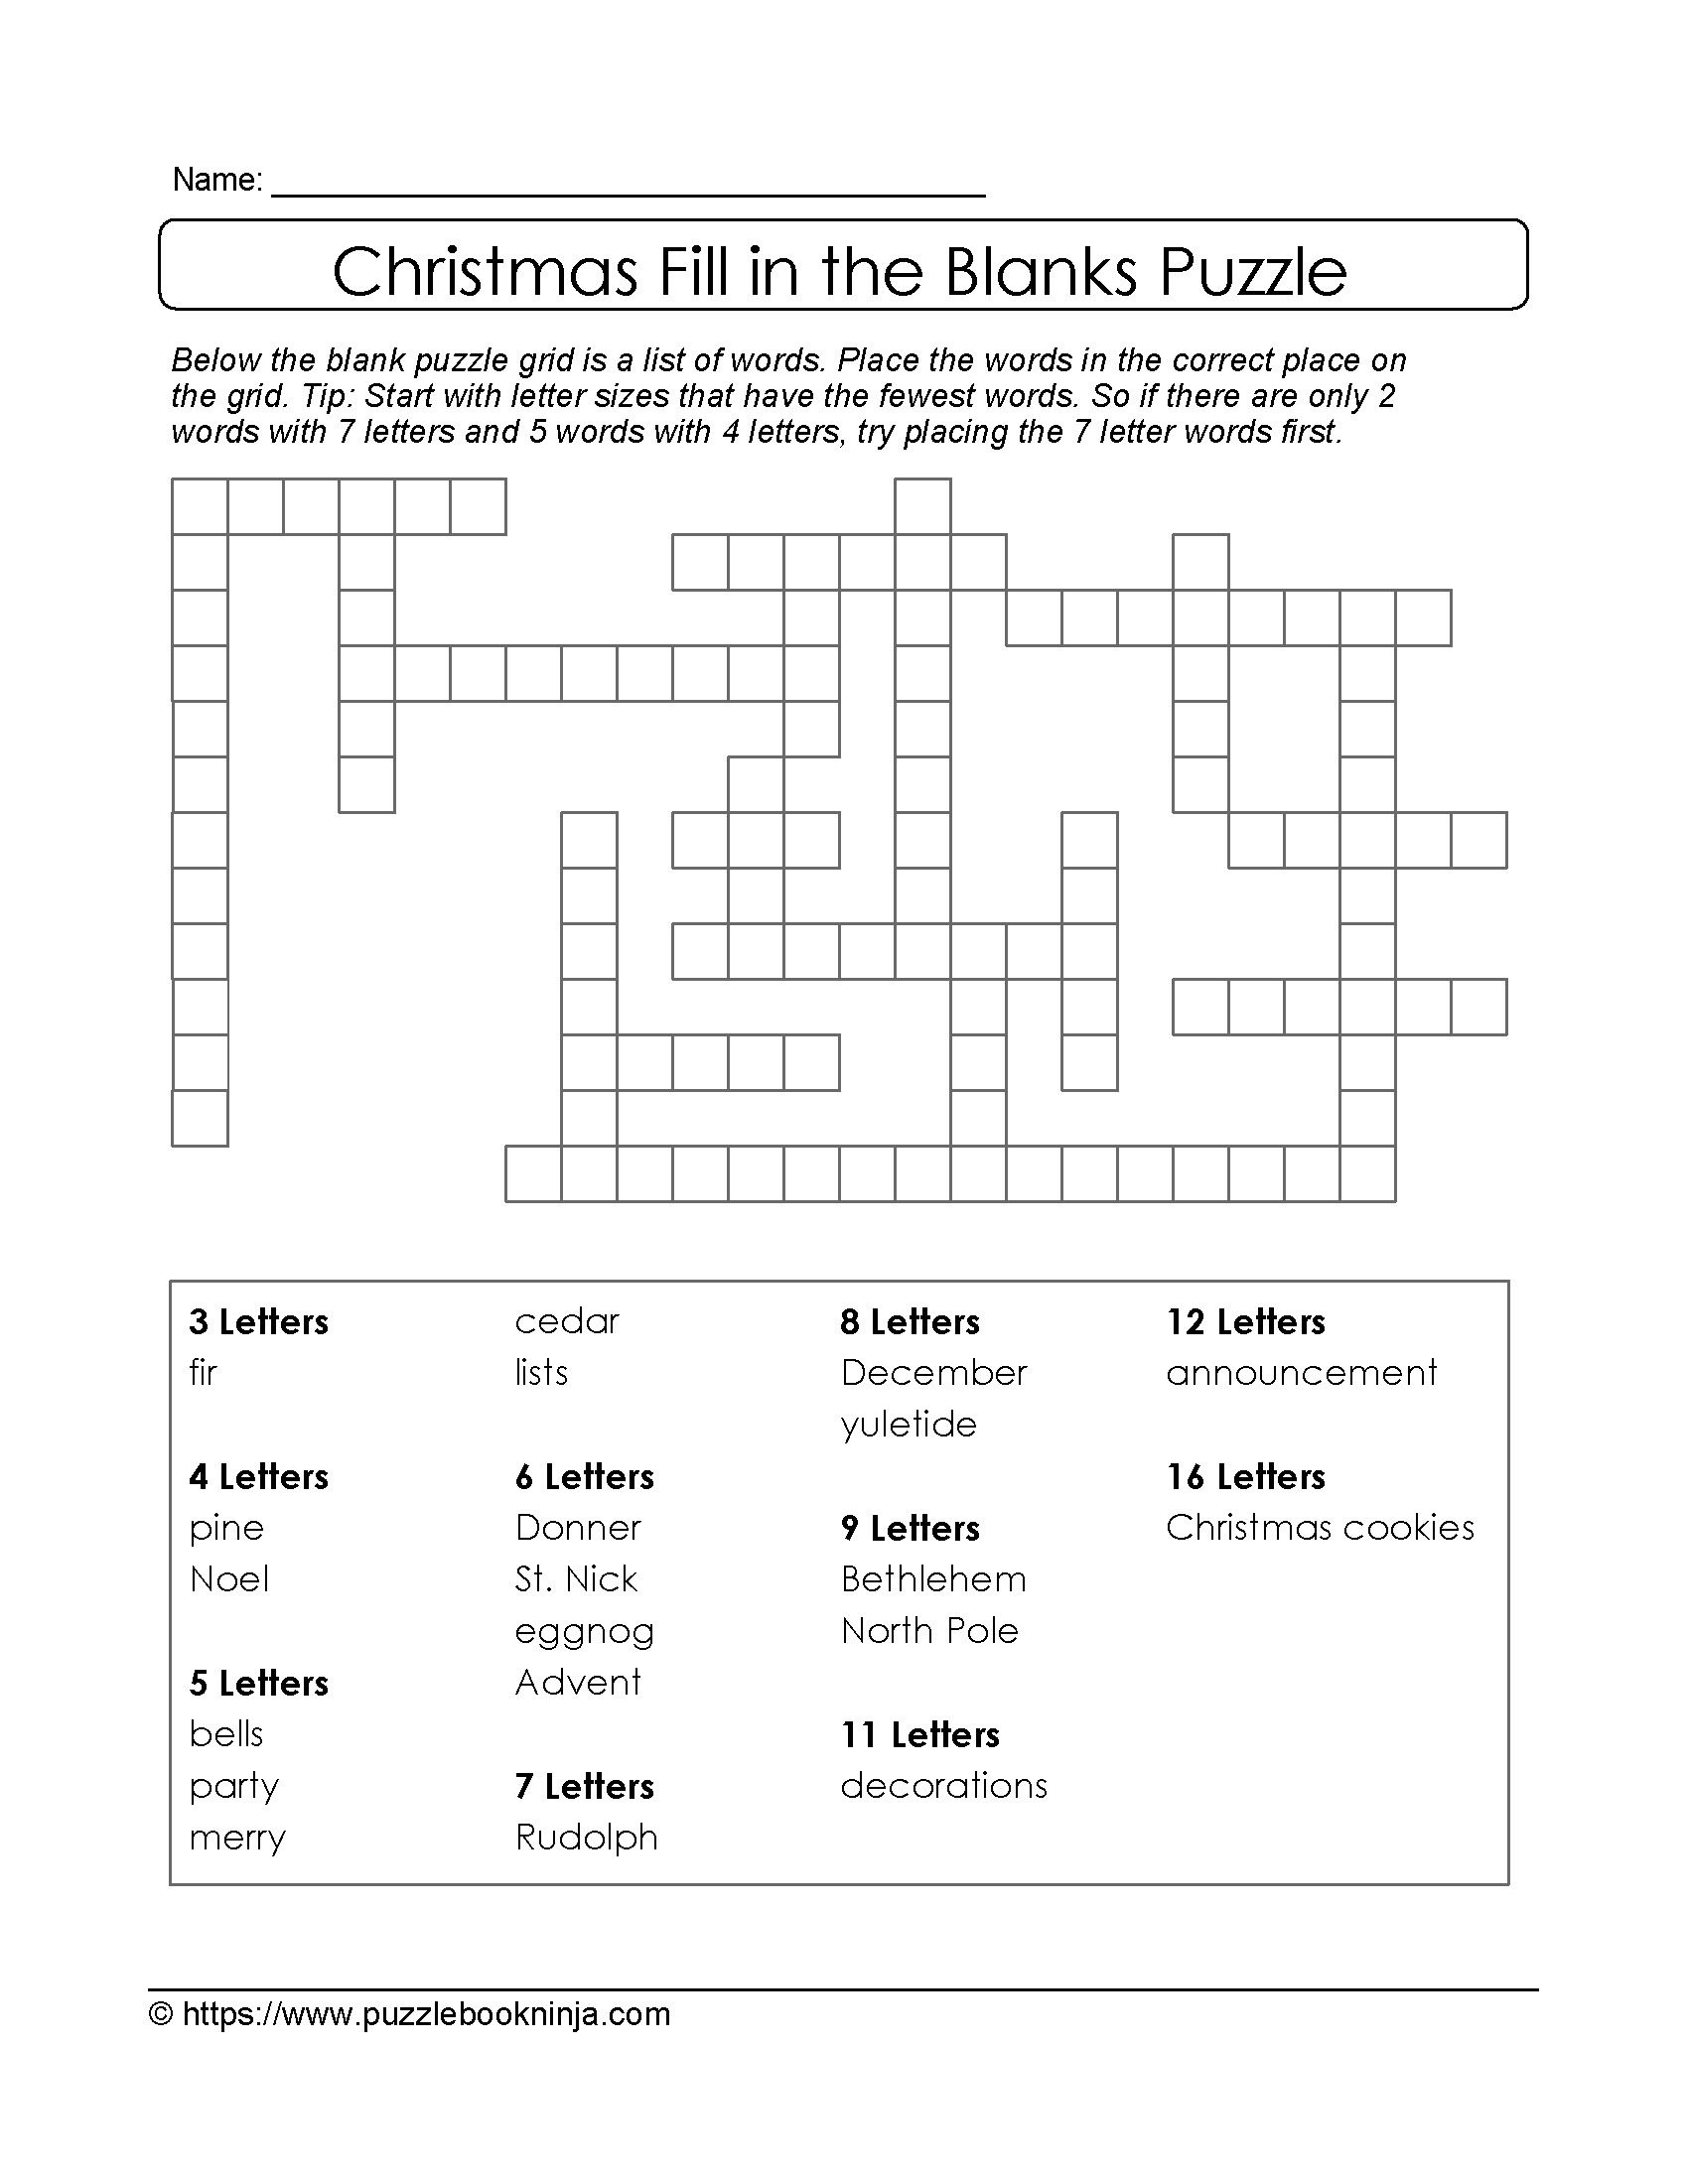 Christmas Printable Puzzle. Free Fill In The Blanks. | Christmas - 9 Letter Word Puzzle Printable